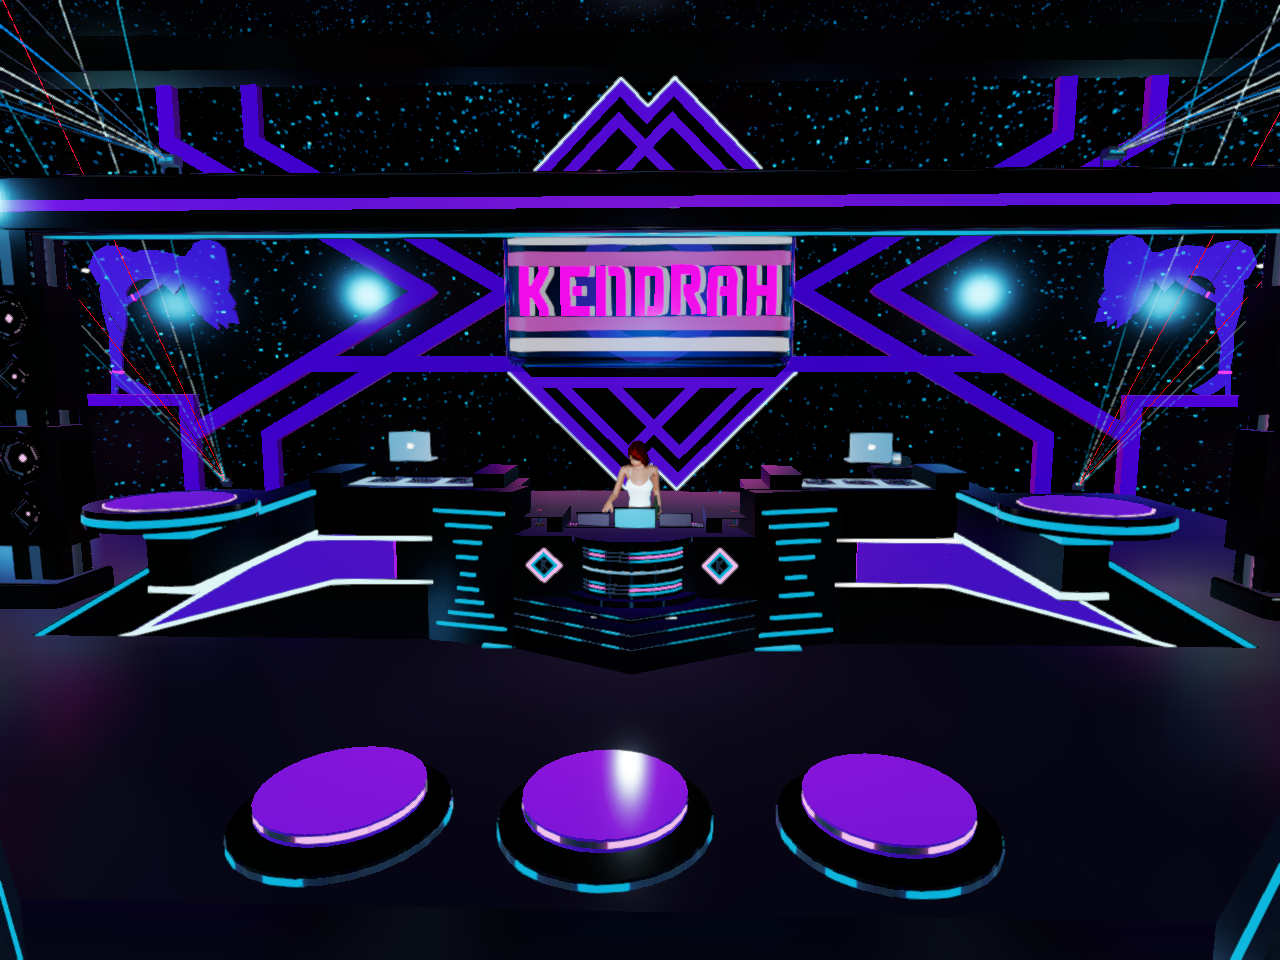 KENDRAH SEX VIP NIGHTCLUB